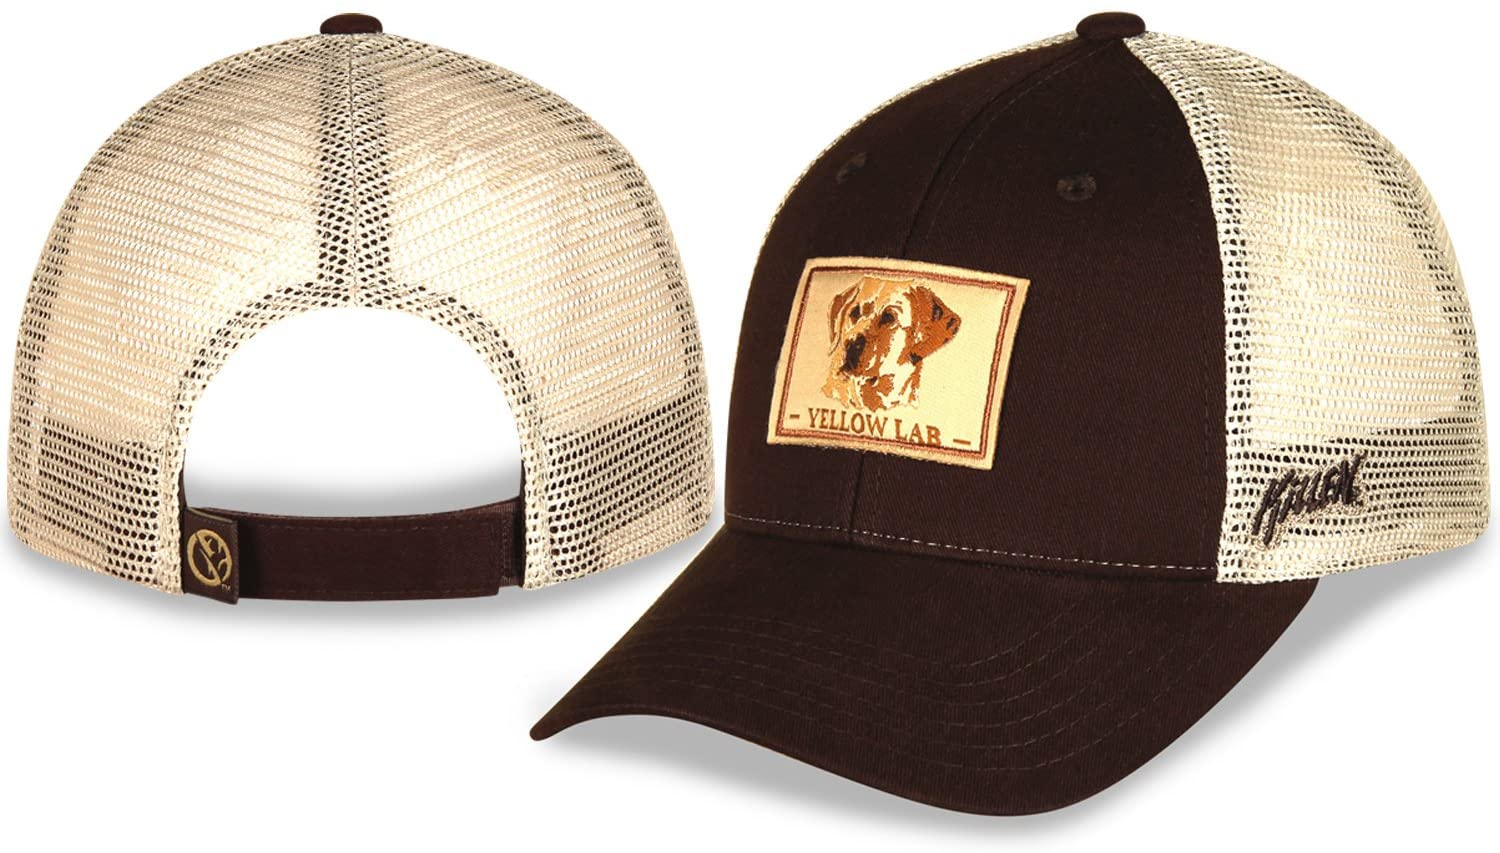 Yellow Lab Hunting Baseball Cap with Copper Front and Khaki mesh Back Featuring Art from Jim Killen